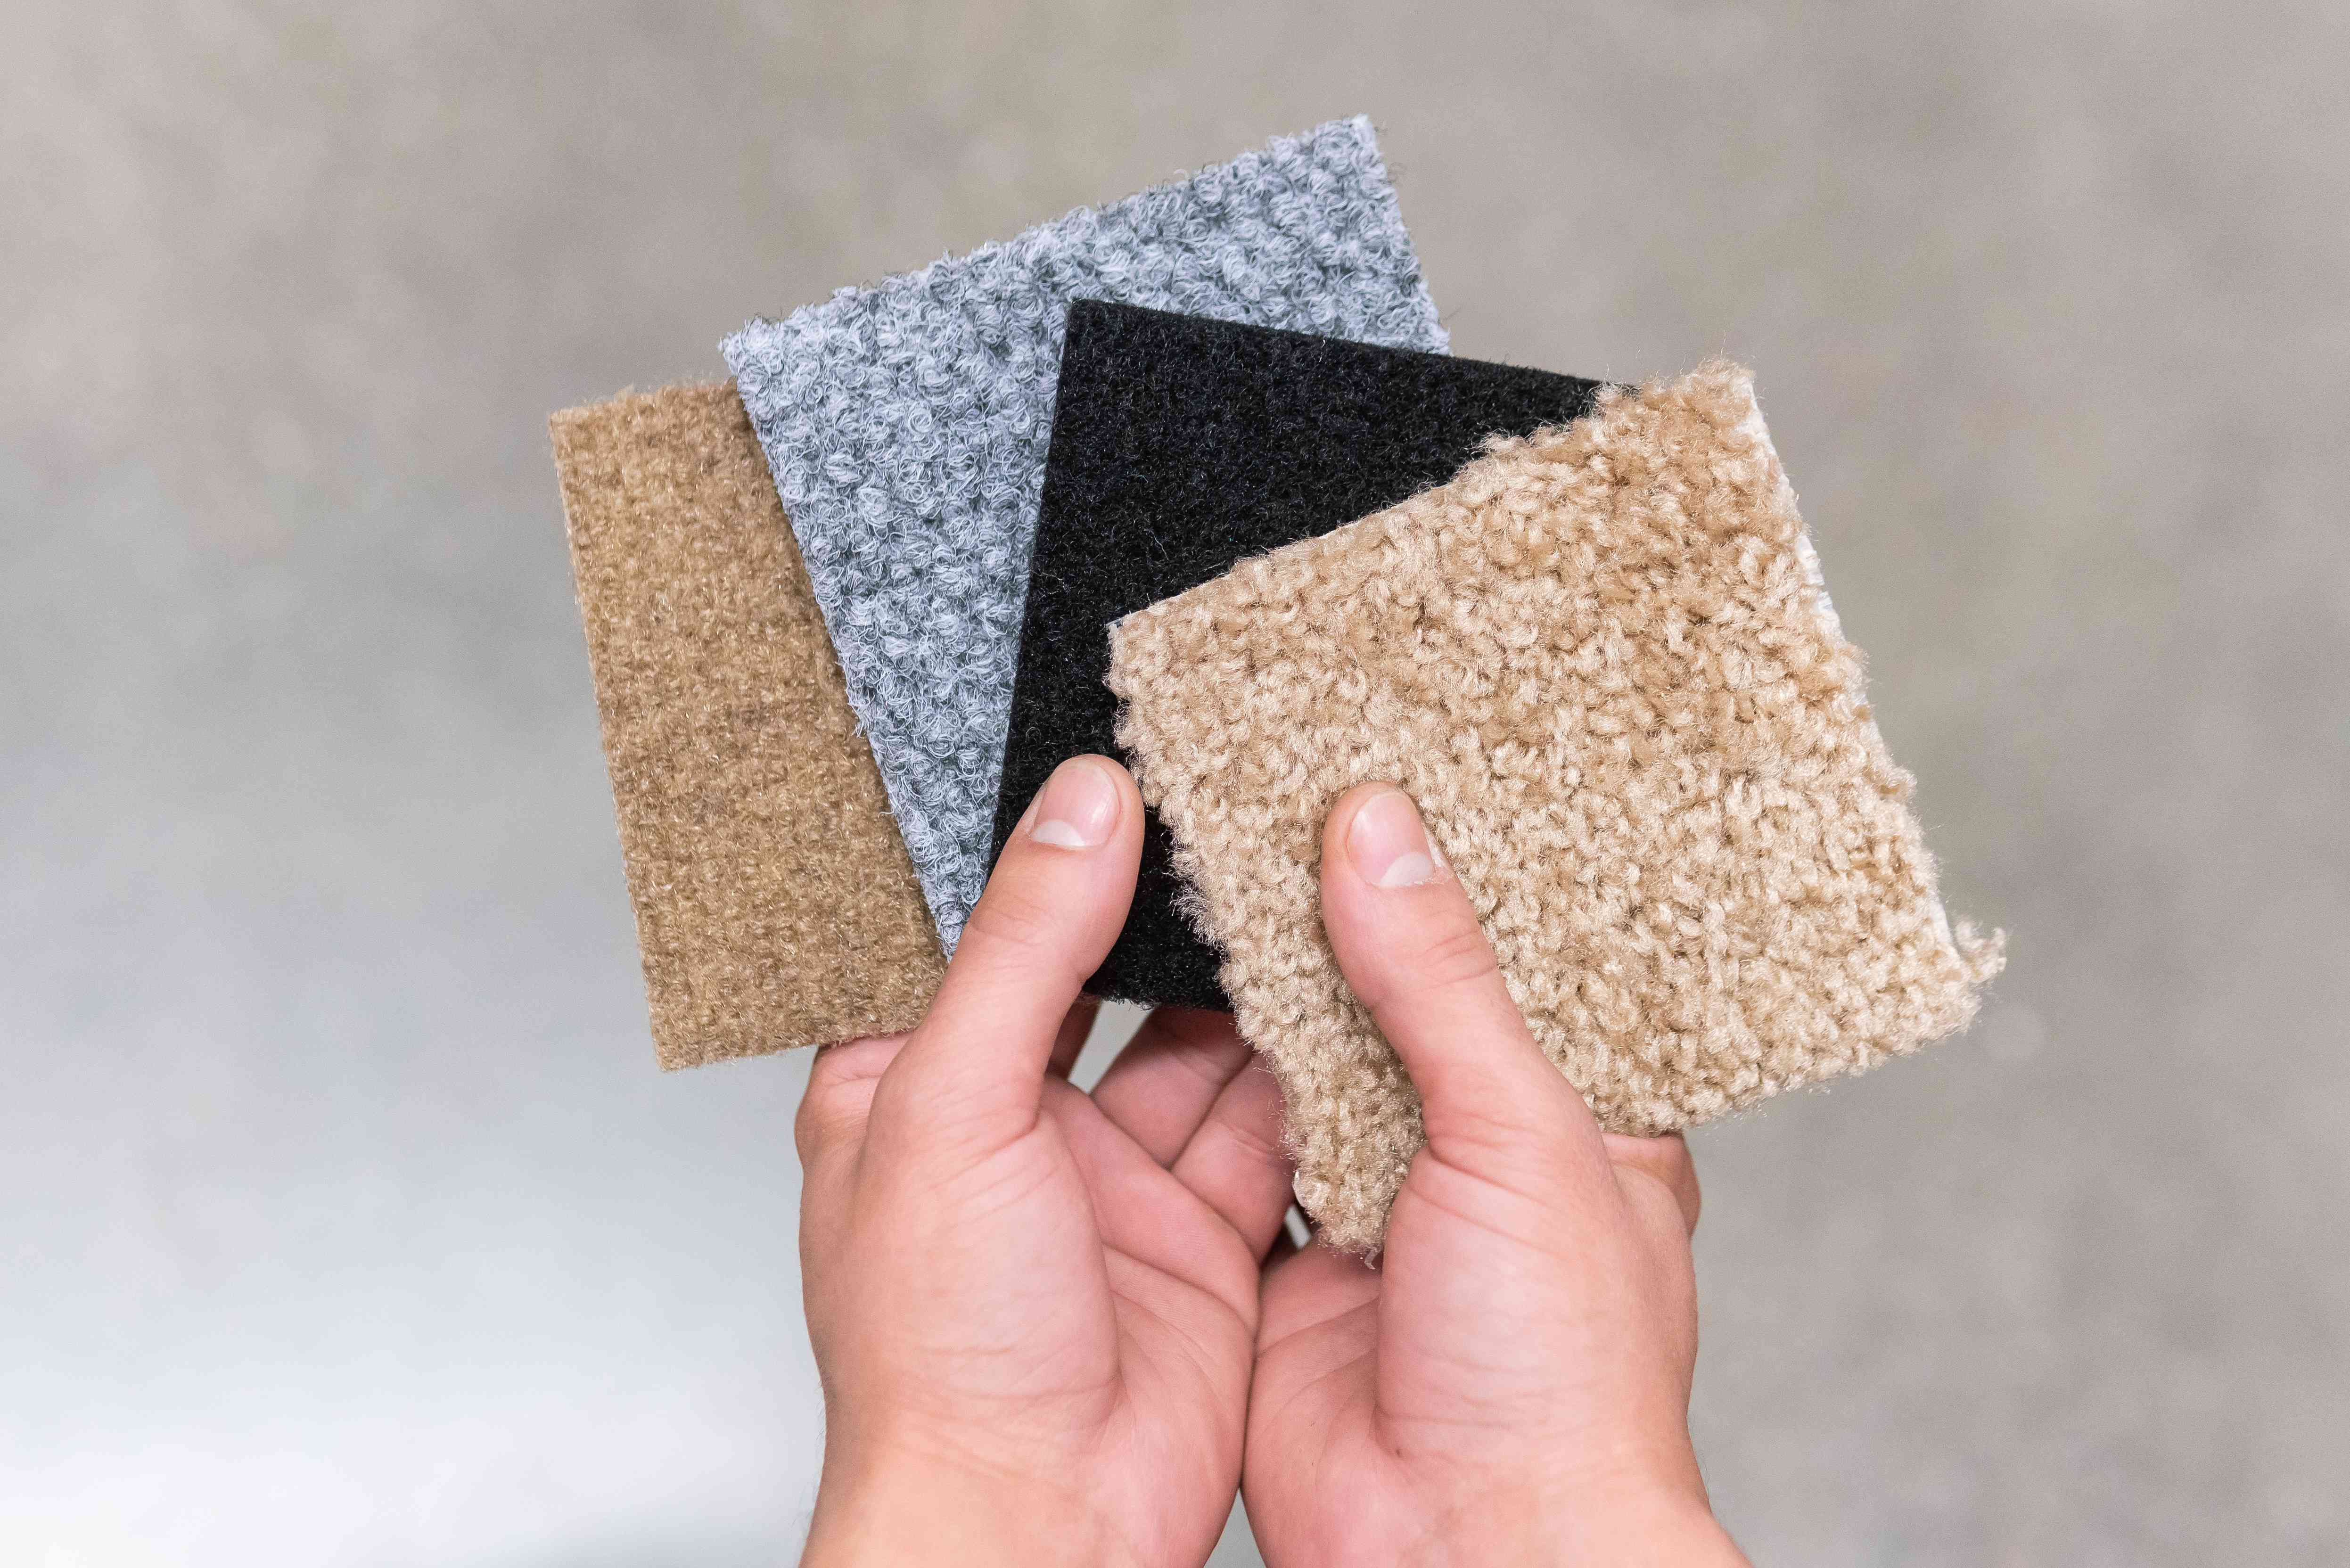 person holding carpet swatches